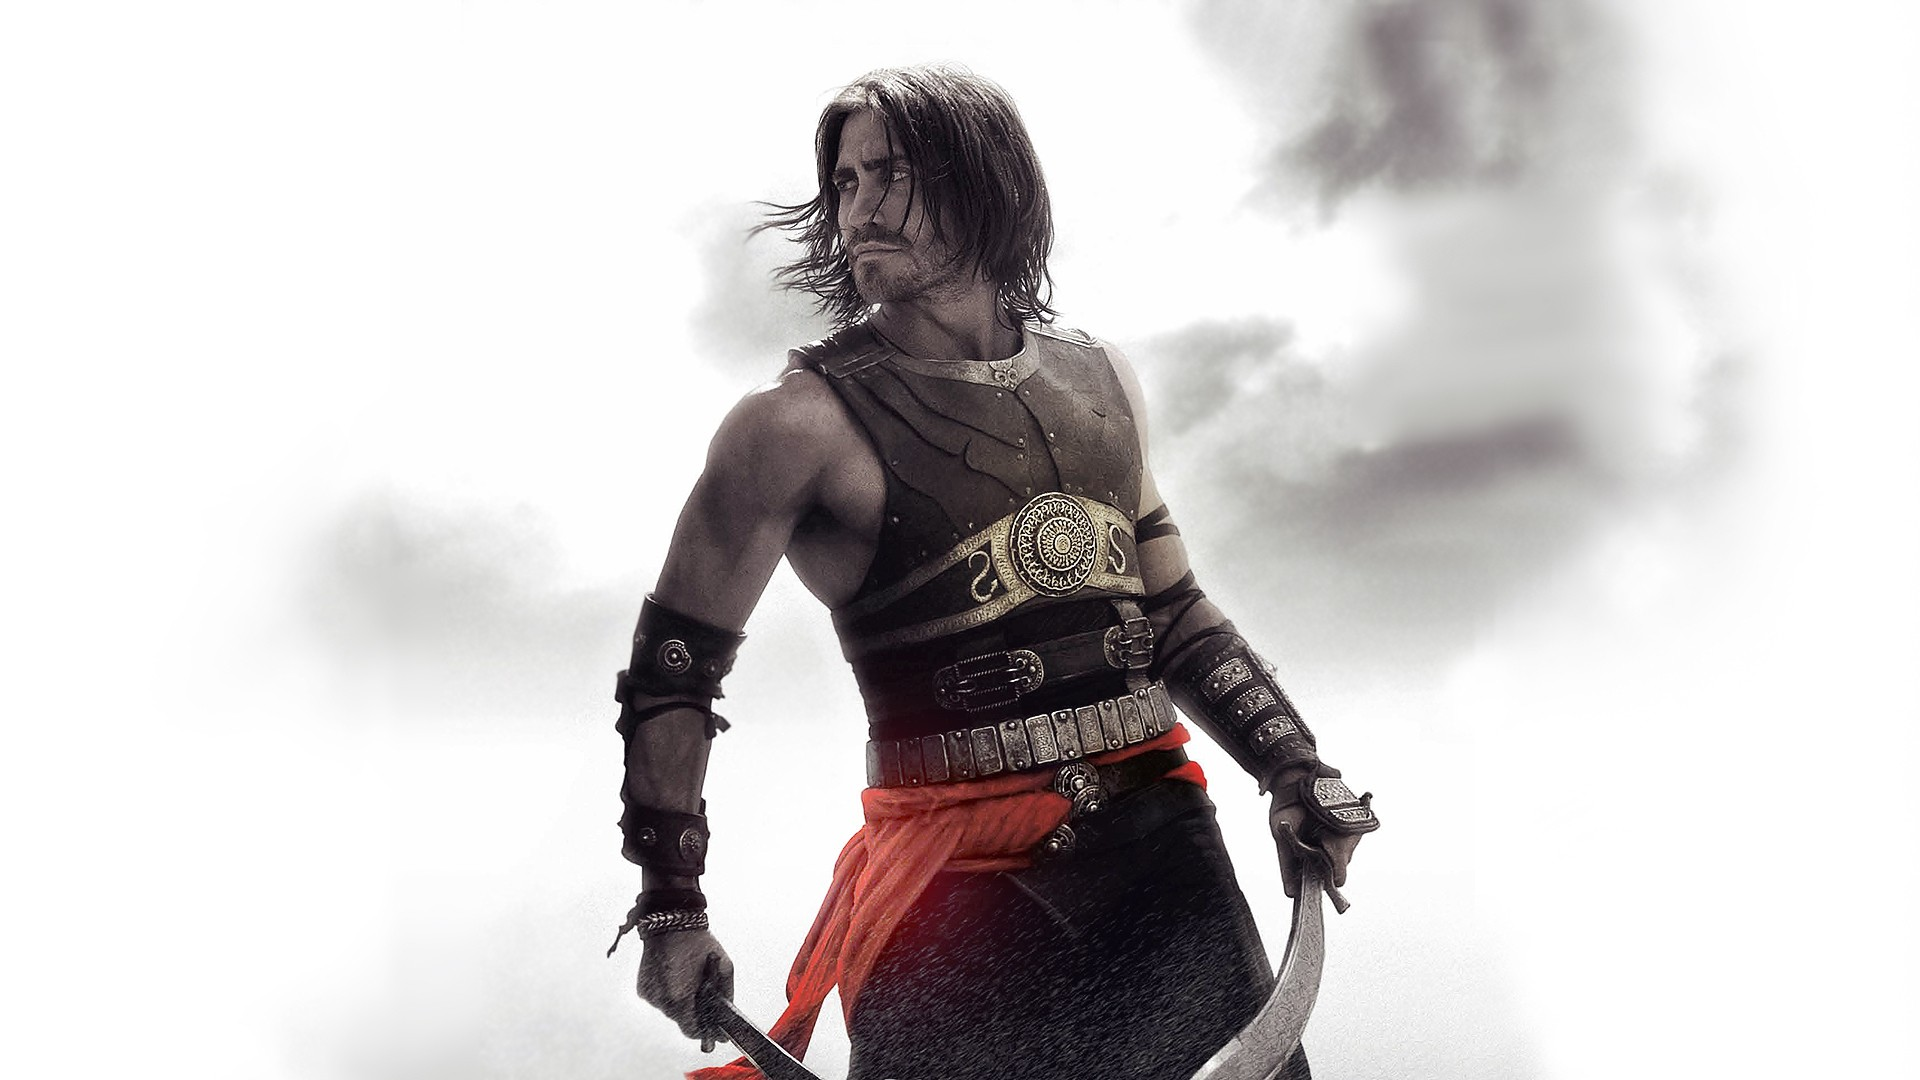 Prince Of Persia 2008 Wallpapers - Wallpaper Cave |Prince Of Persia Movie Wallpapers